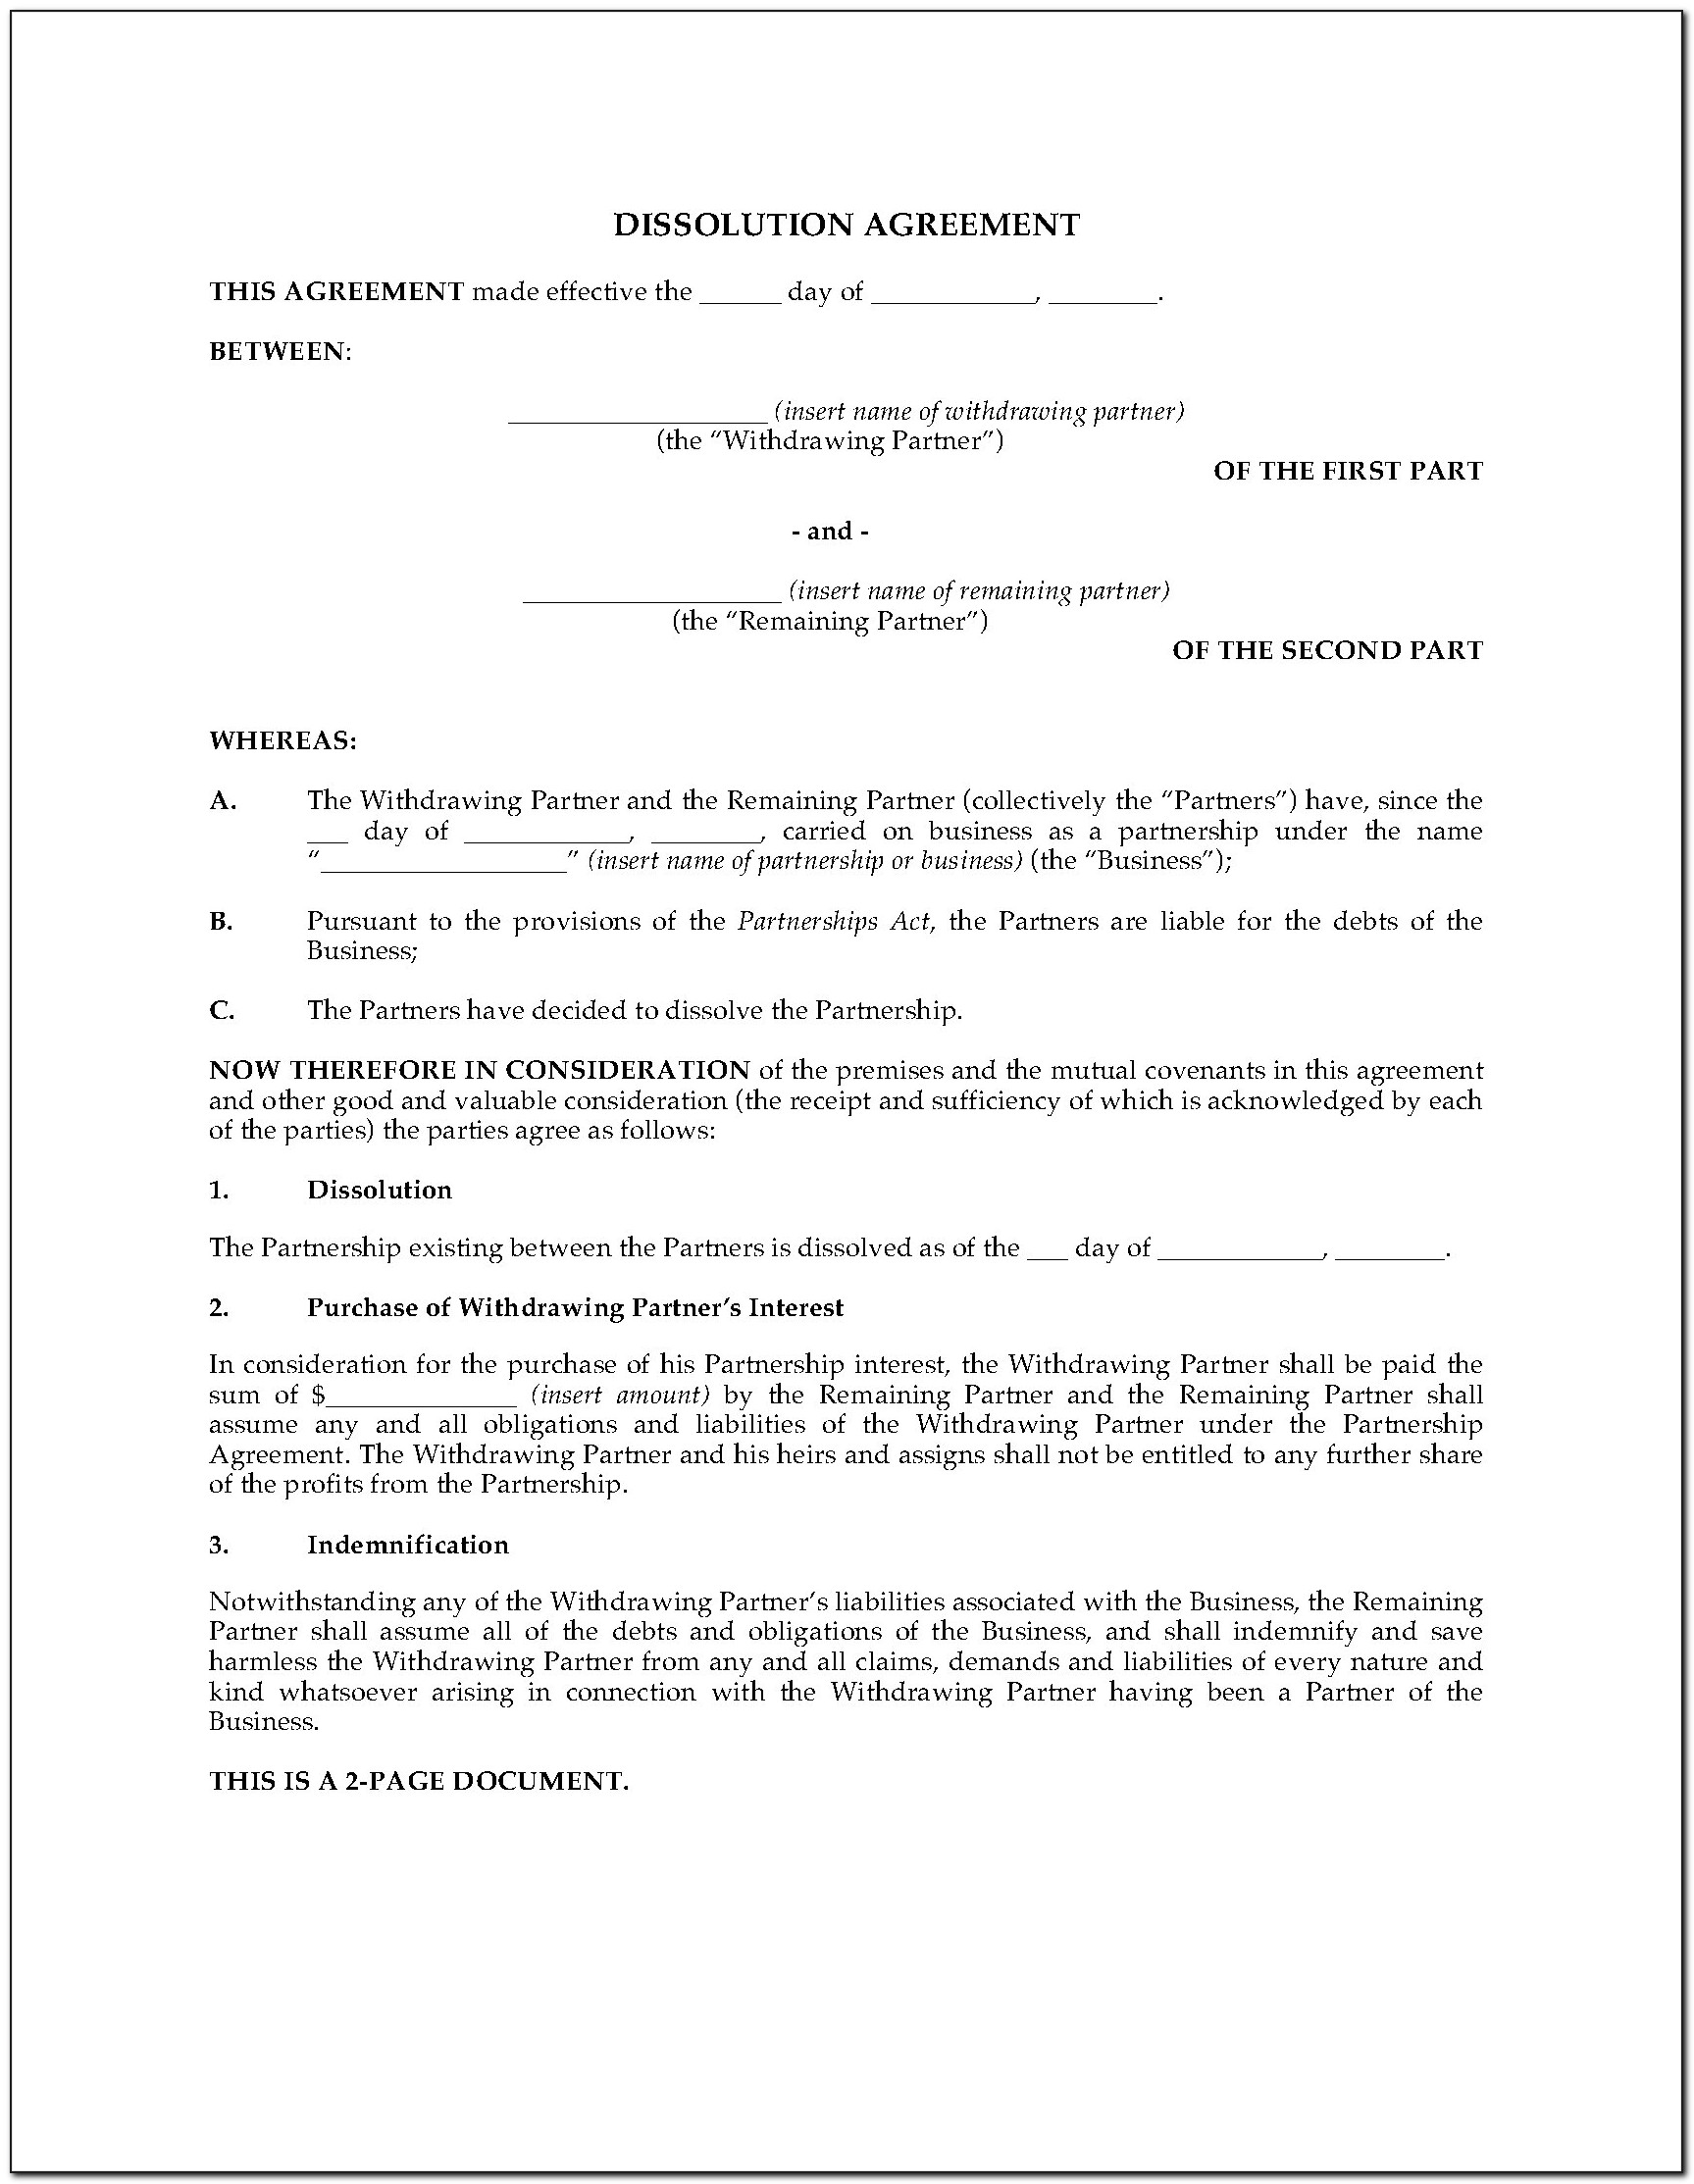 Form 6 For Dissolution Of Partnership Firm